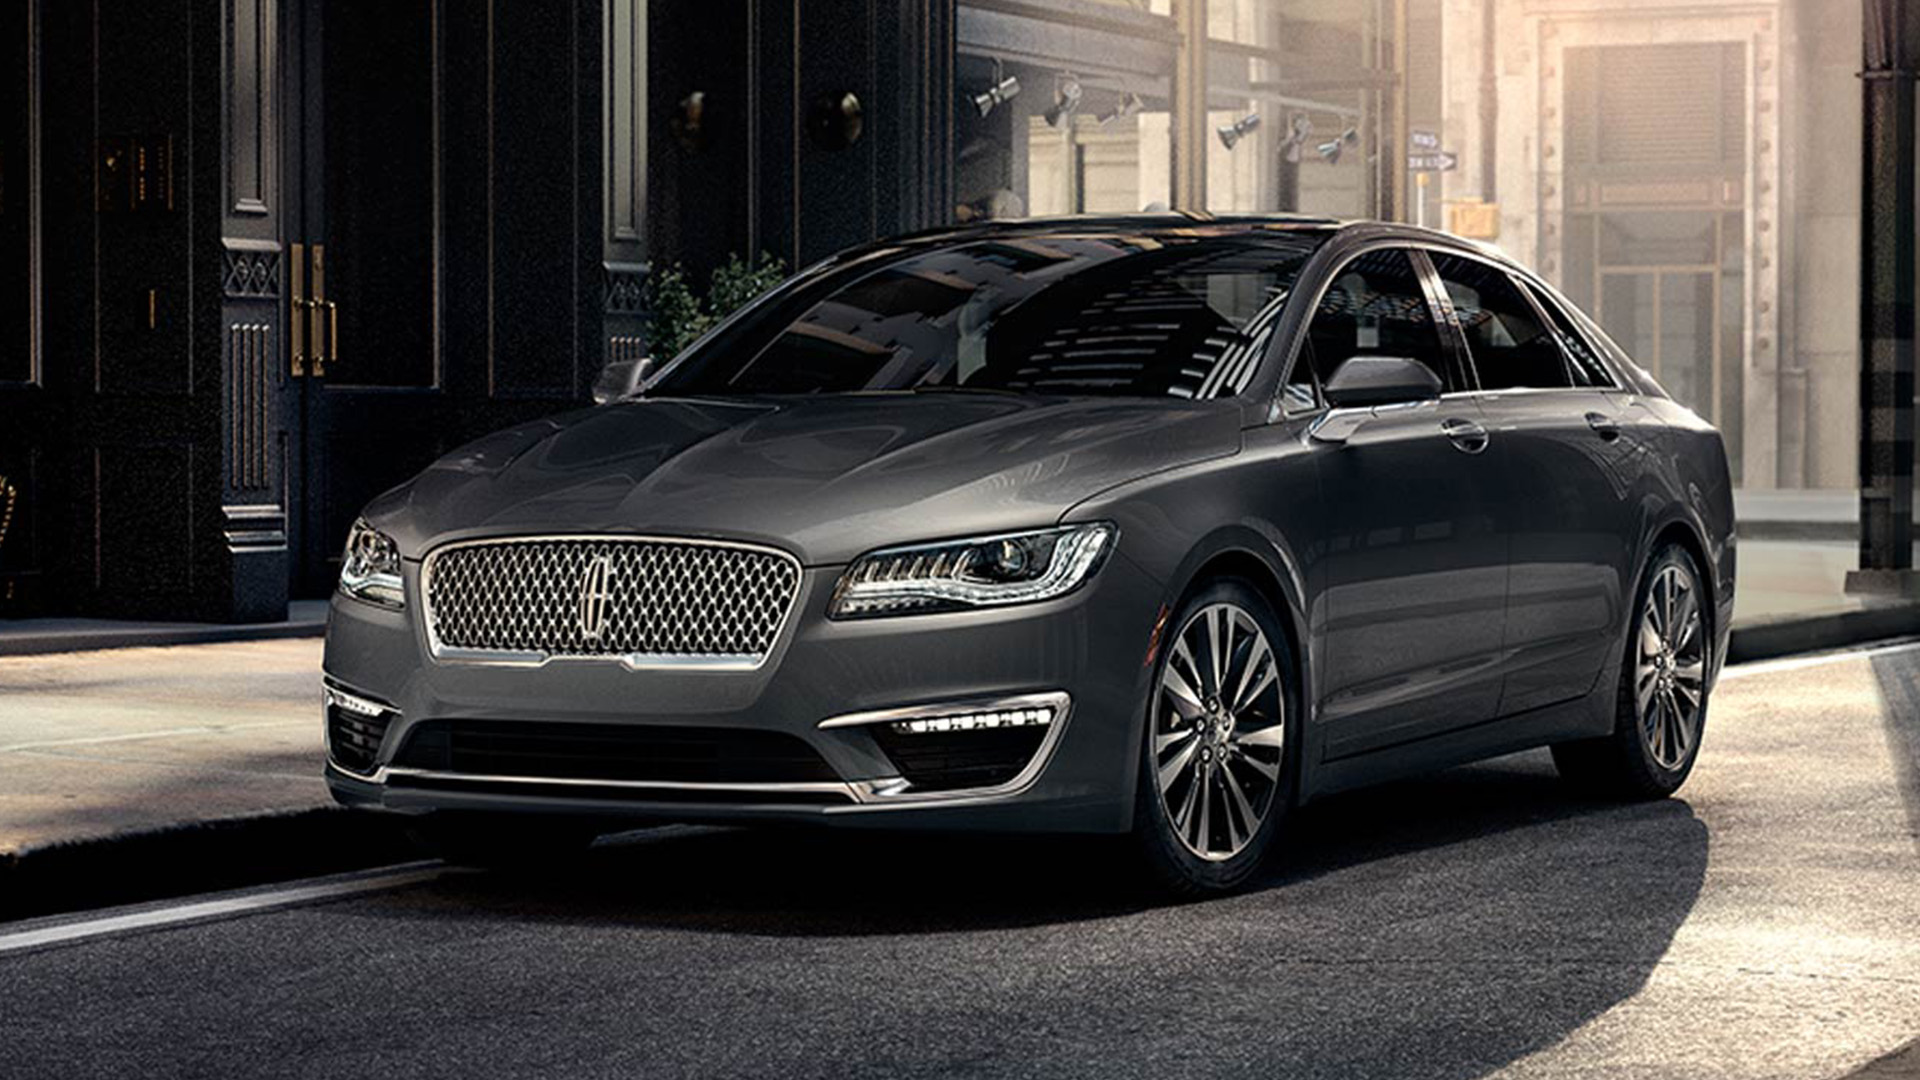 LINCOLN | Fort Lauderdale International Auto Show